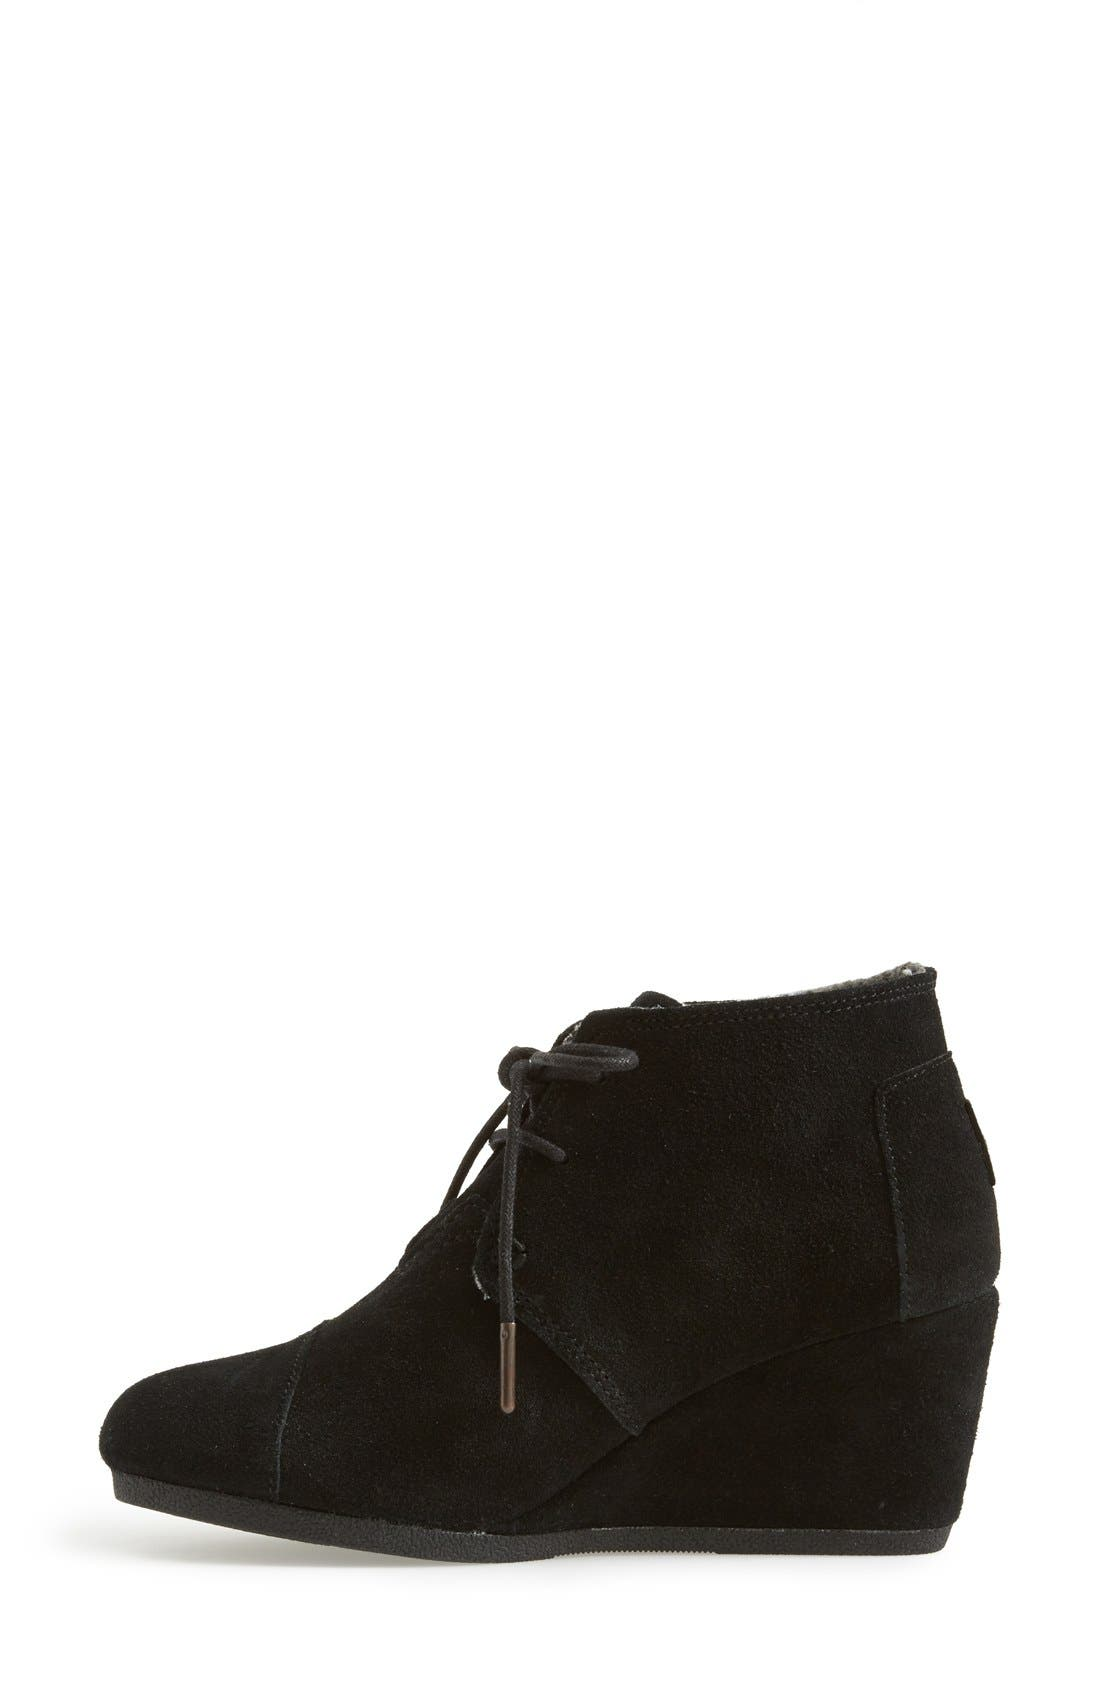 TOMS, 'Desert' Wedge Bootie, Alternate thumbnail 2, color, 001